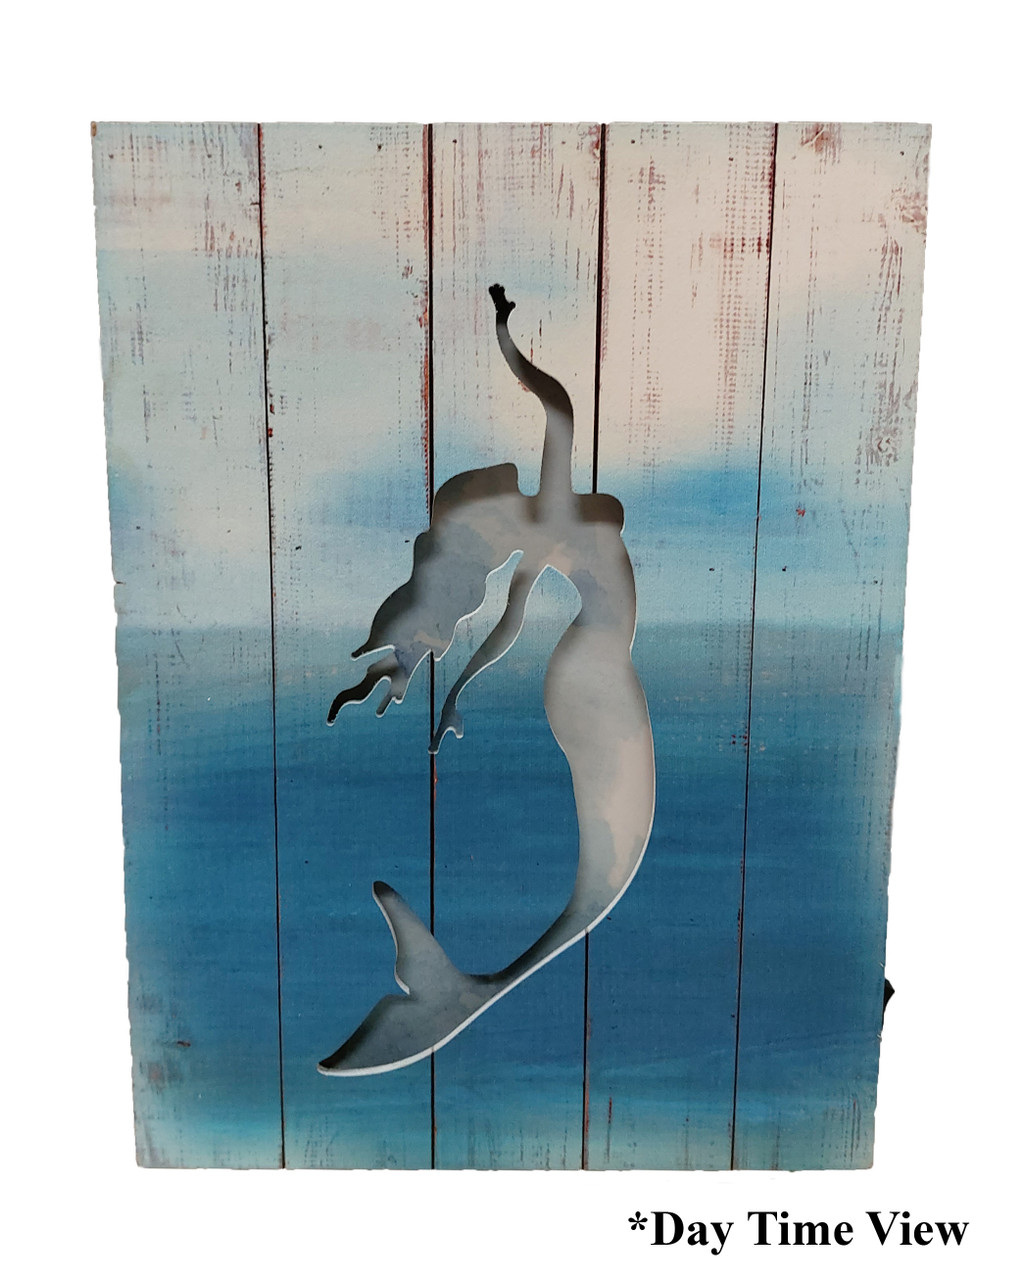 (MP-2046) 3 Dimensional Mermaid Wooden Wall Art with LED Back Lighting - Daytime View